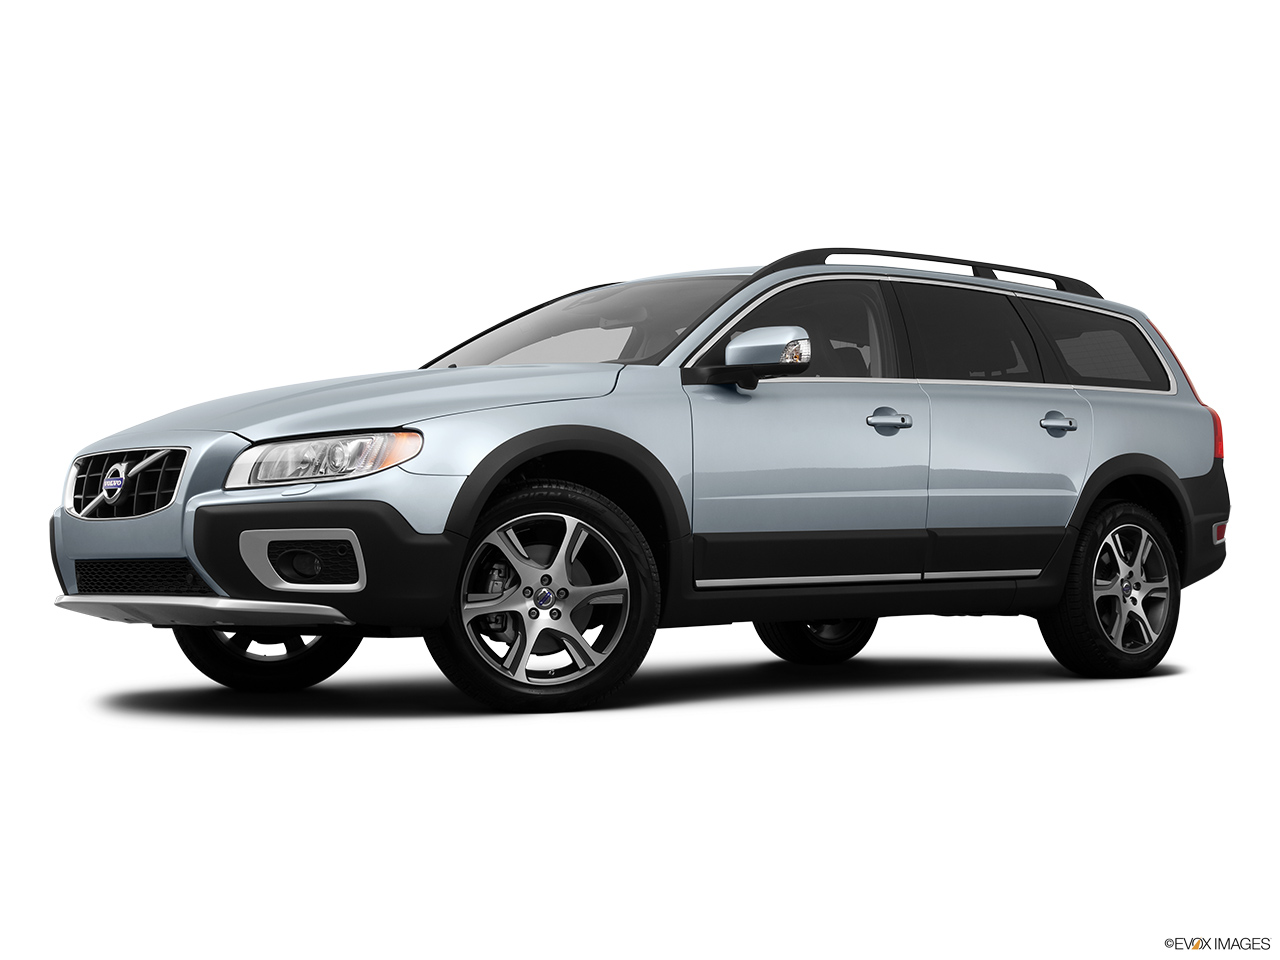 2013 Volvo XC70 T6 AWD Platinum Low/wide front 5/8.